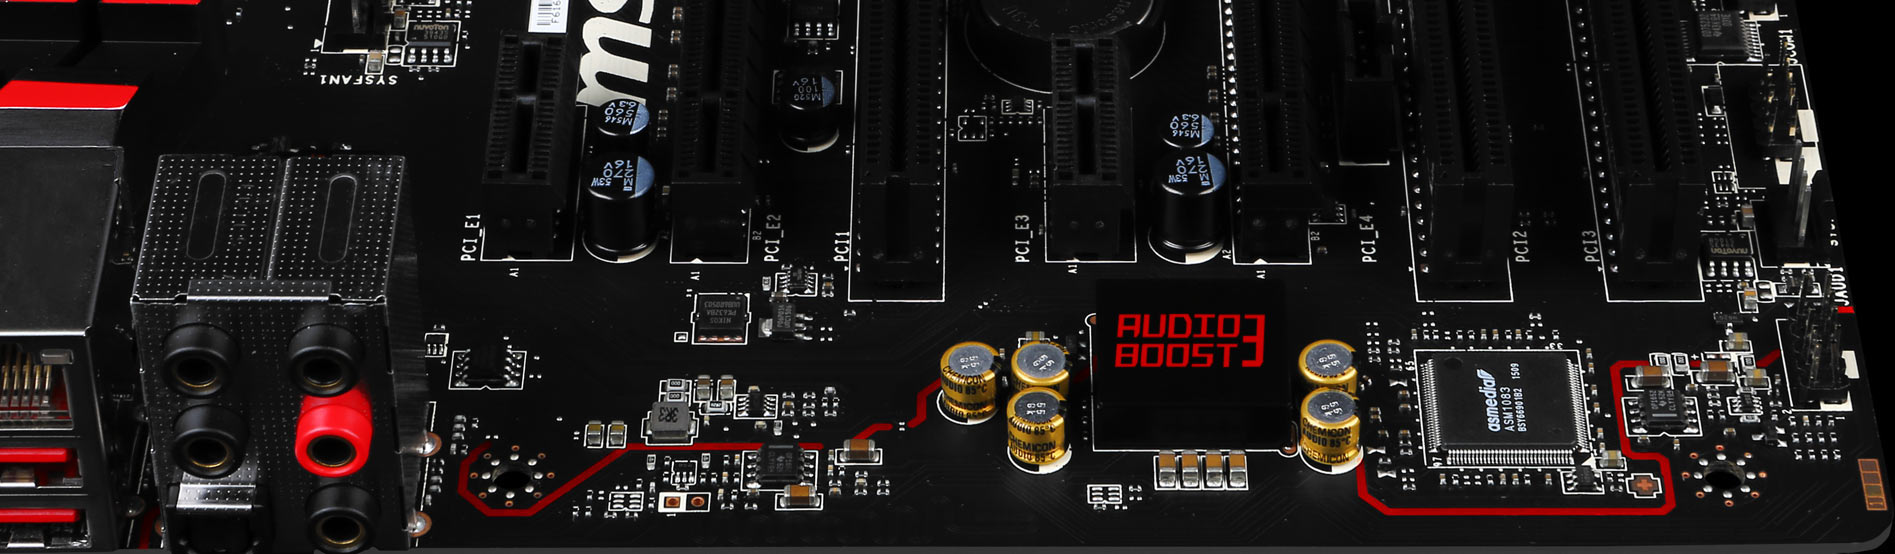 audioboost pcb top overview for z170a gaming m5 msi usa  at bakdesigns.co